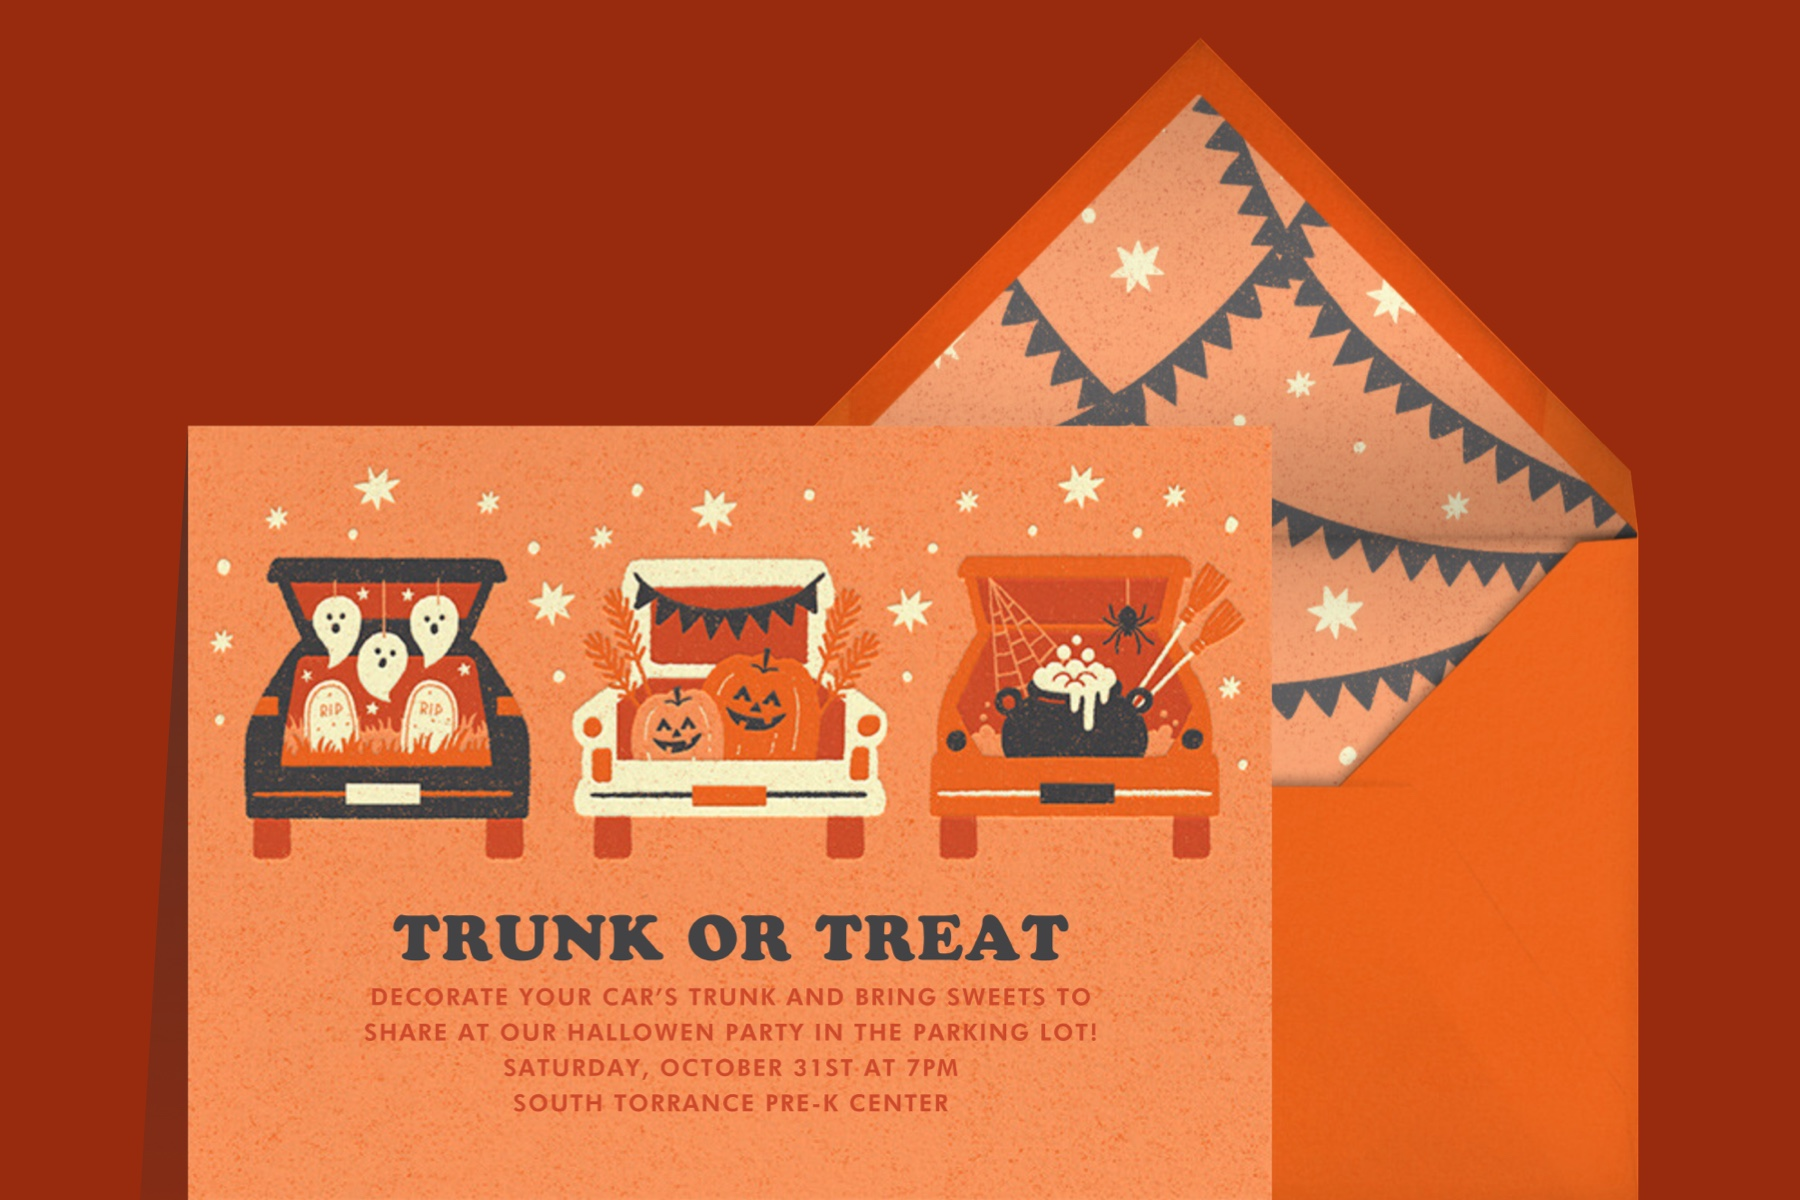 """""""Trunk or Treat"""" invitation by Paperless Post. The orange card features an illustration of three cards with their trunks open and Halloween goodies, like ghosts, jack-o'-lanterns, and a cauldron, inside. The card appears on a red background."""